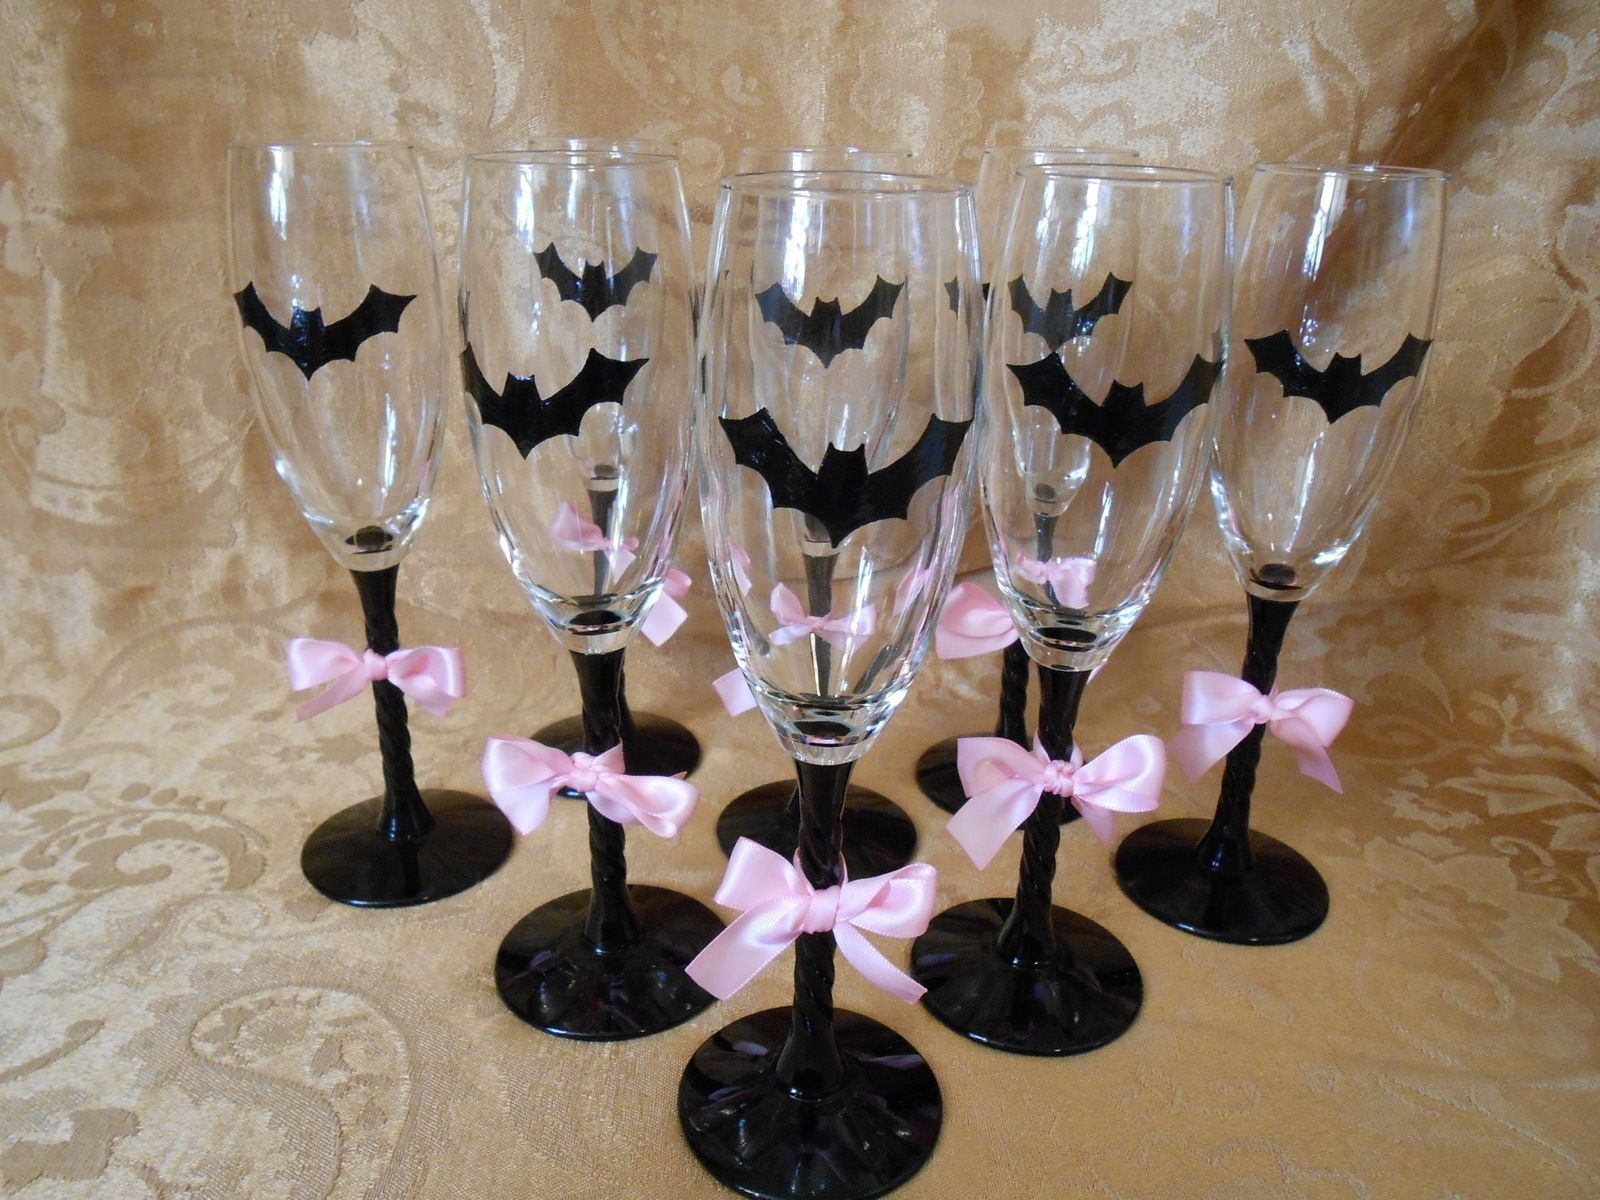 Bats N Bows Wine Glasses  #howto #tutorial